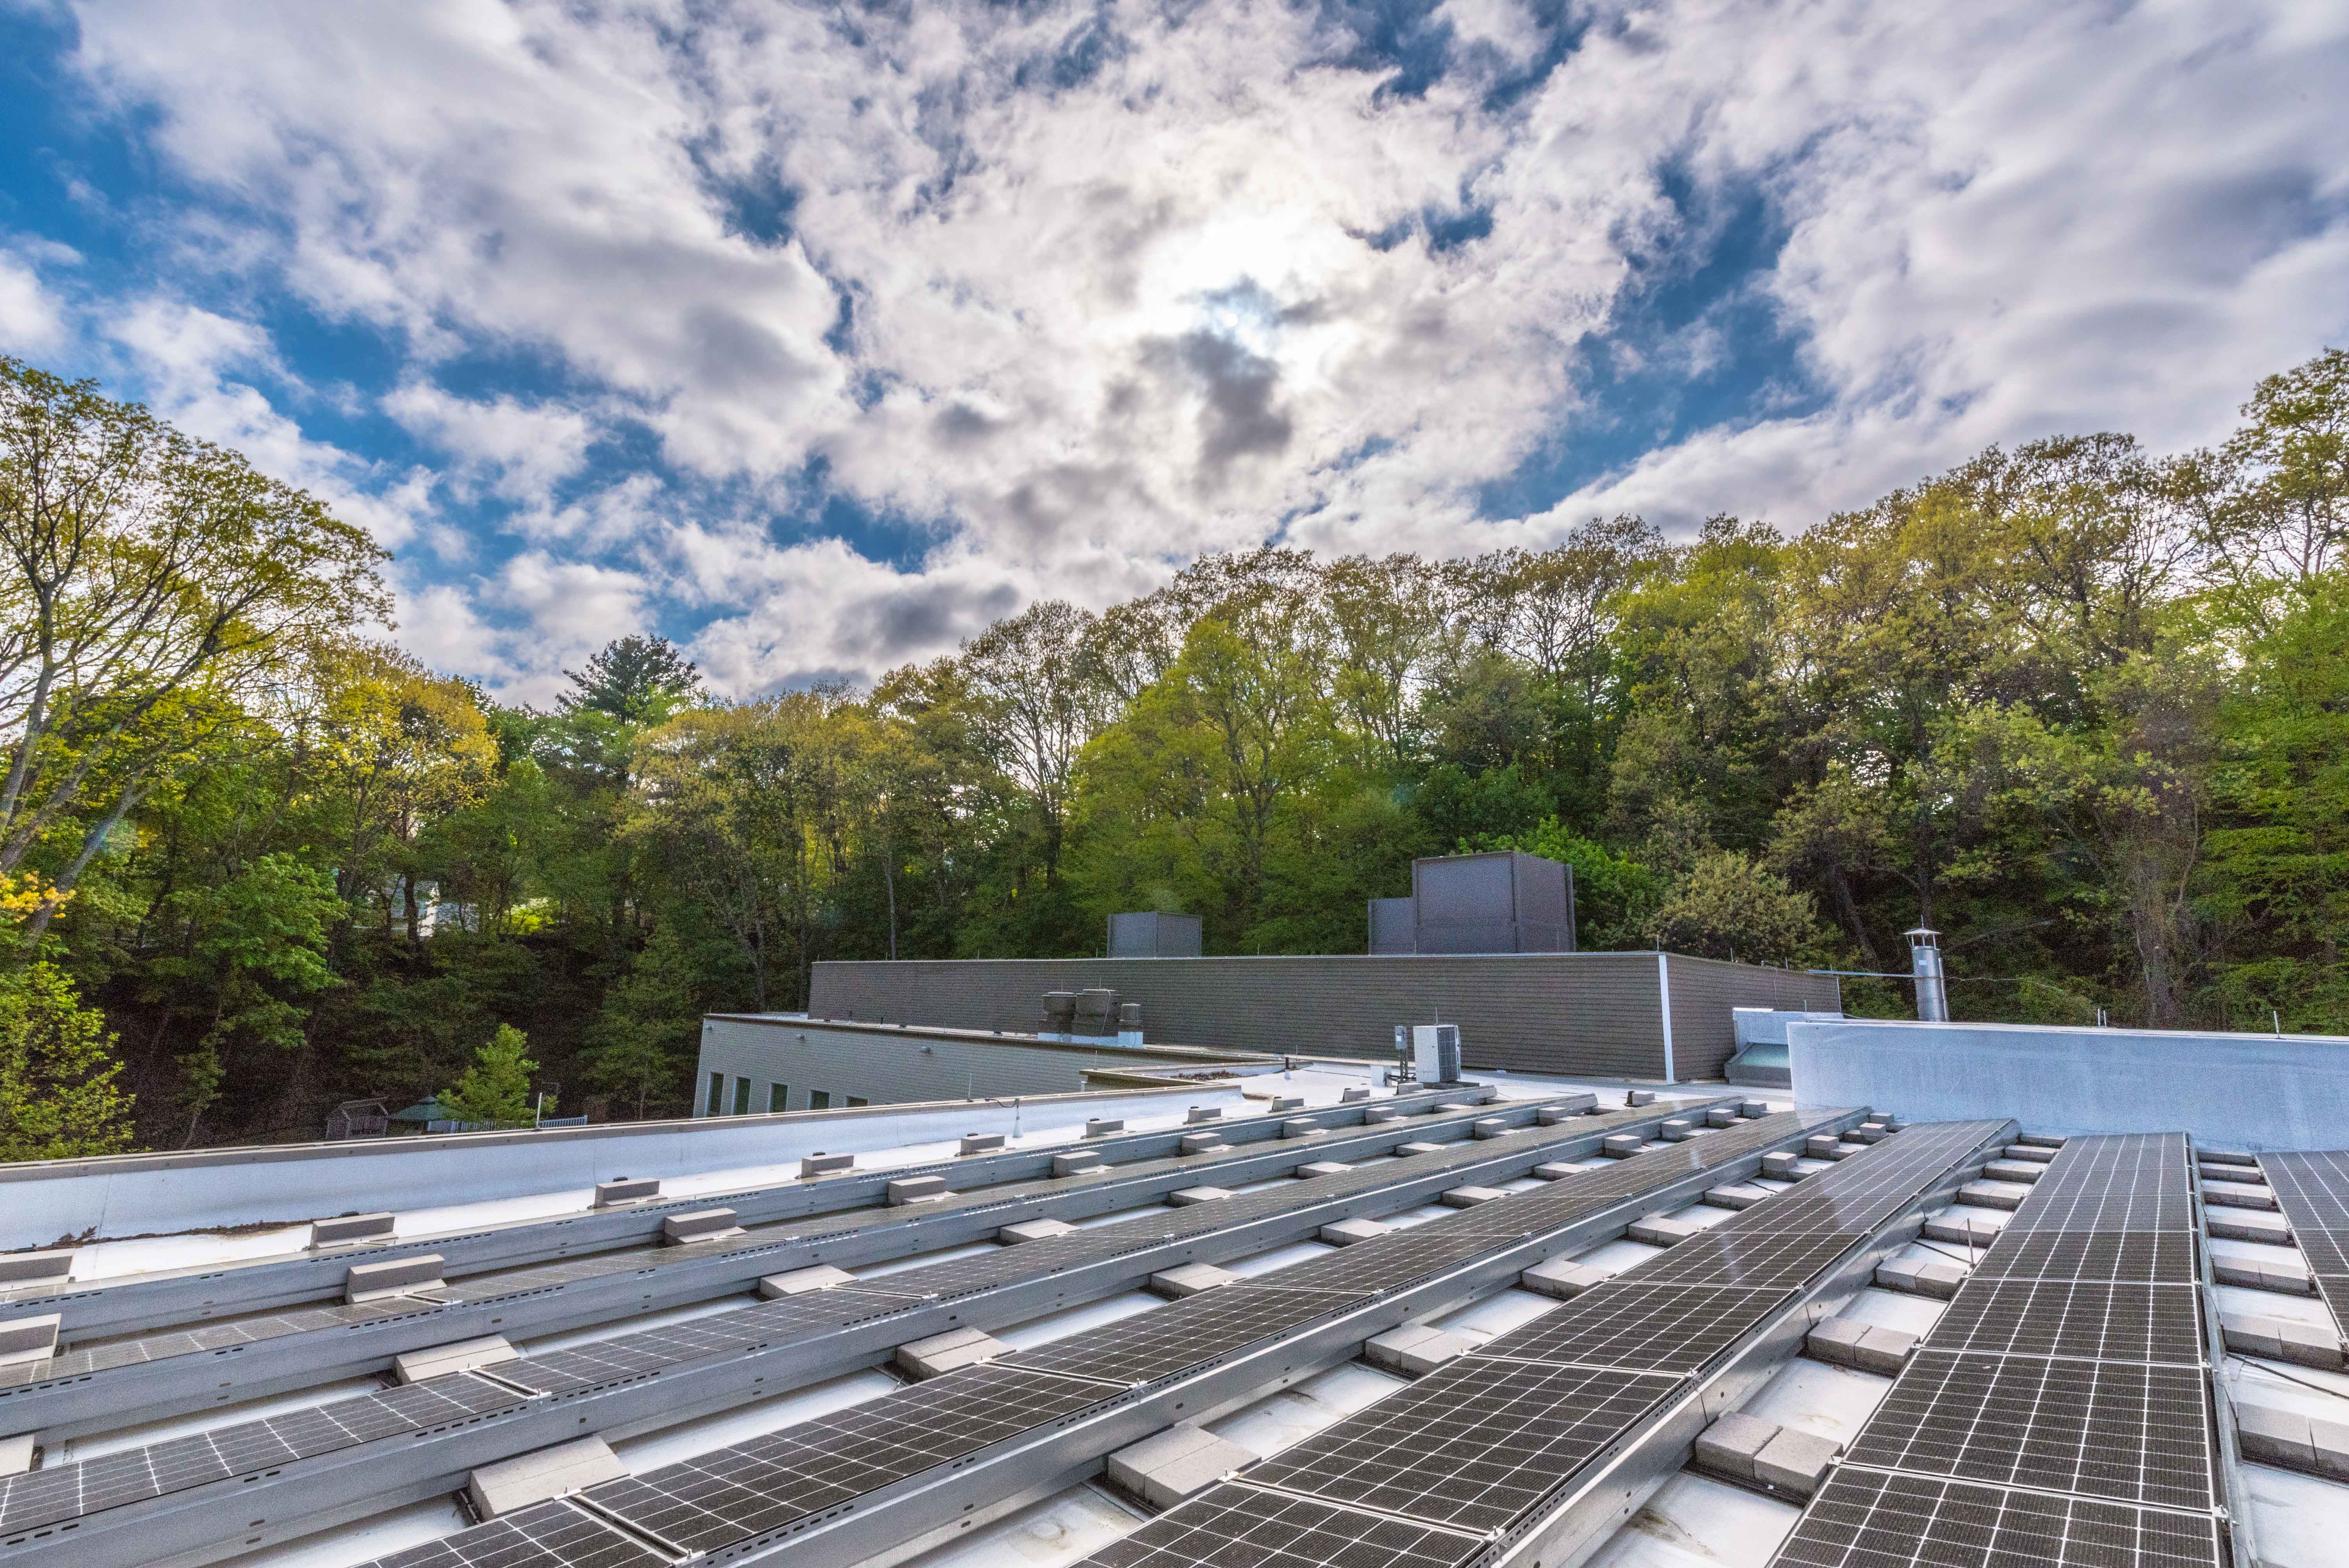 Solect Rabbi Calls Temple's Solar Array An 'Actualization Of Our Values'